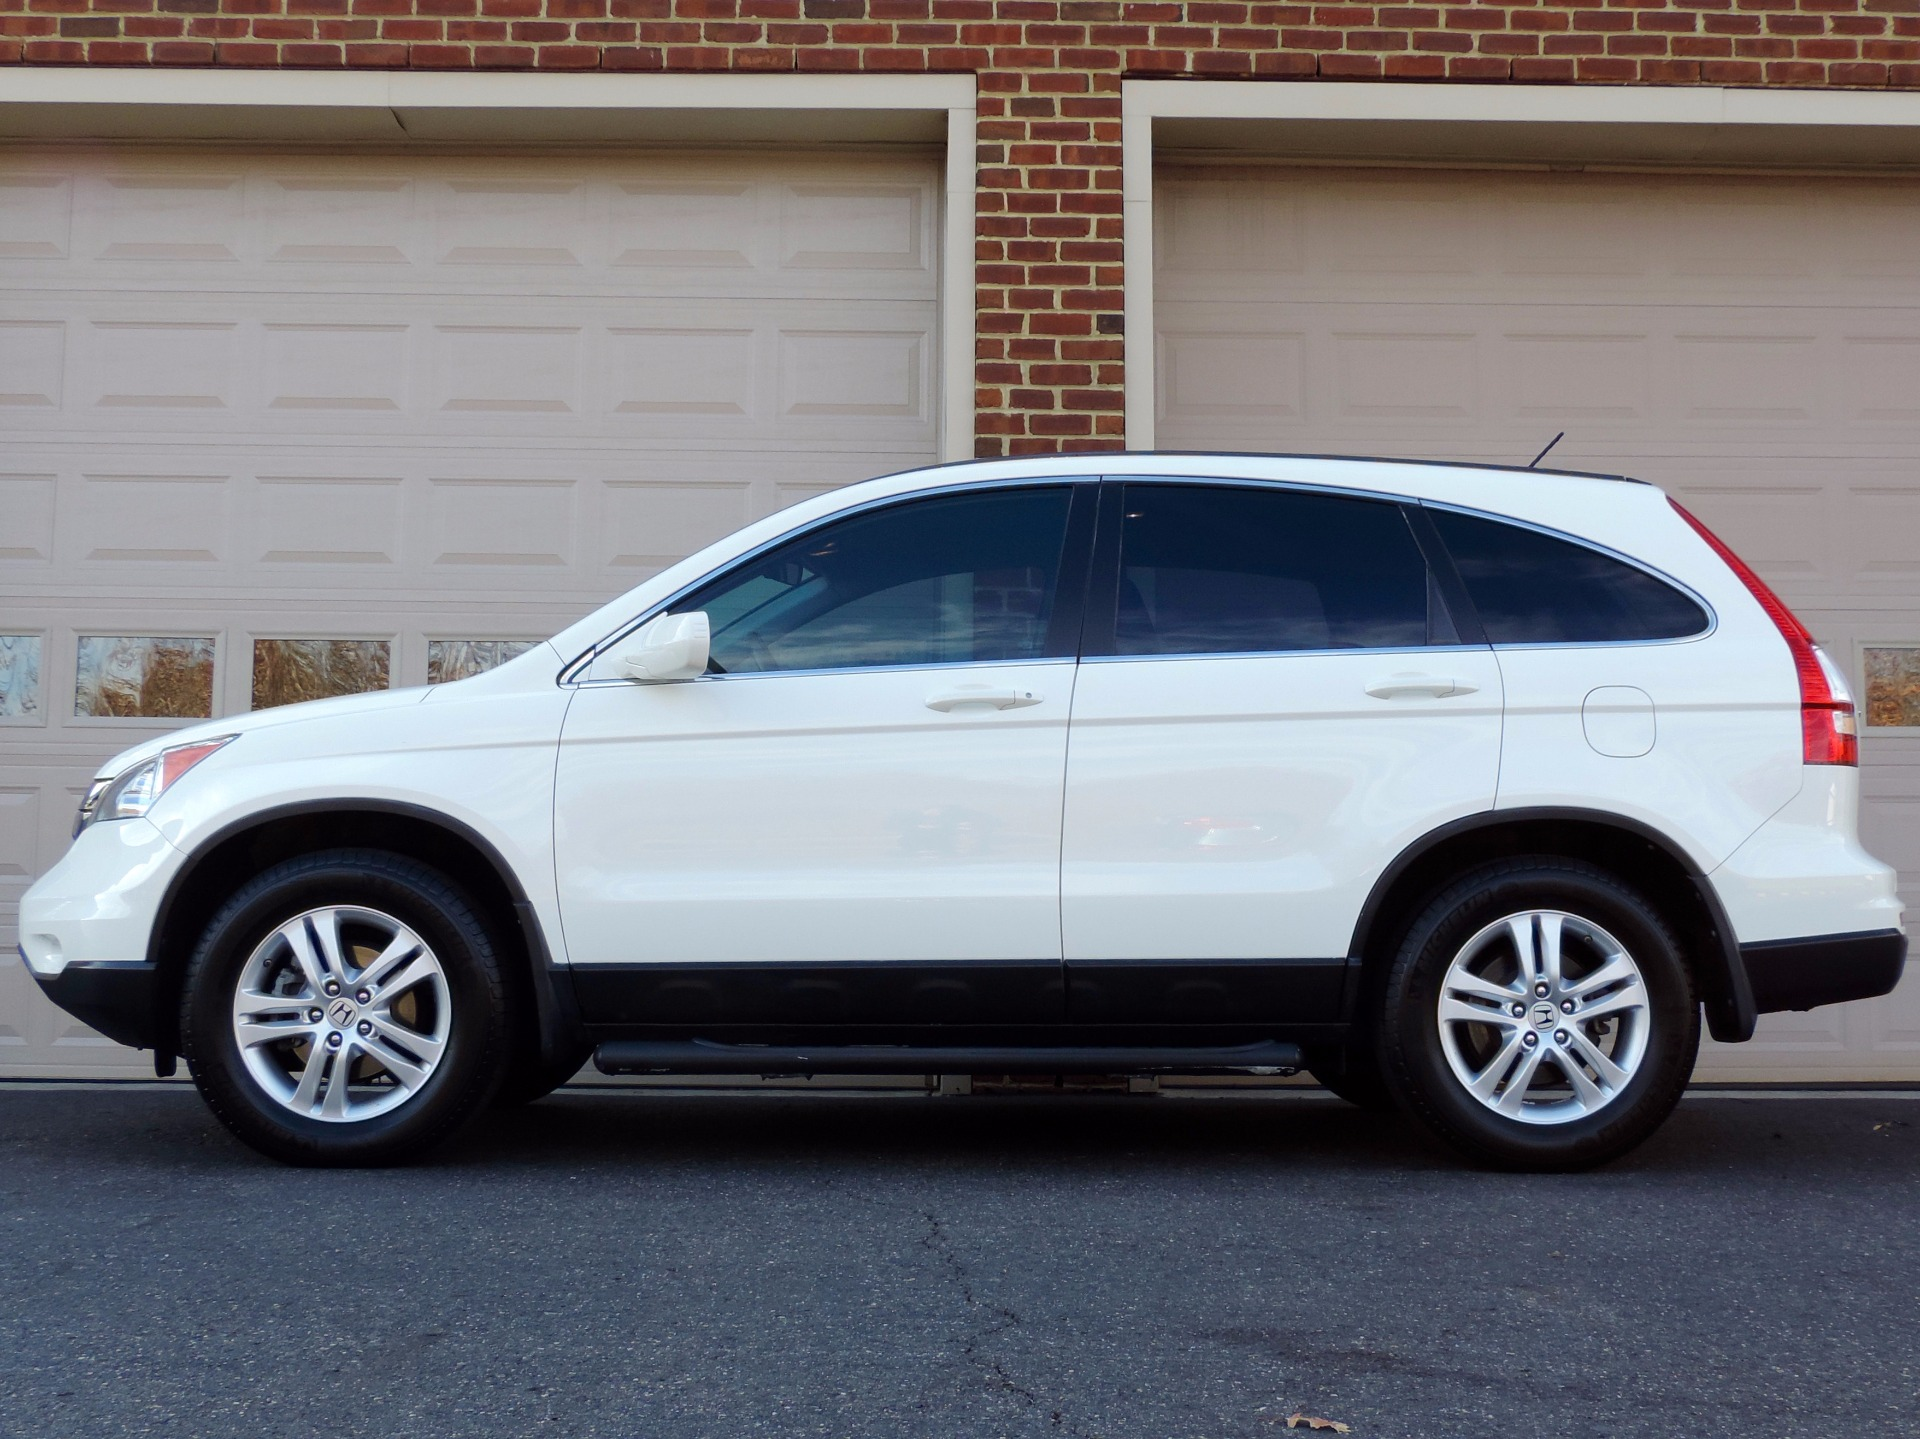 Honda Dealers Nj >> 2011 Honda CR-V EX-L Stock # 015373 for sale near Edgewater Park, NJ | NJ Honda Dealer